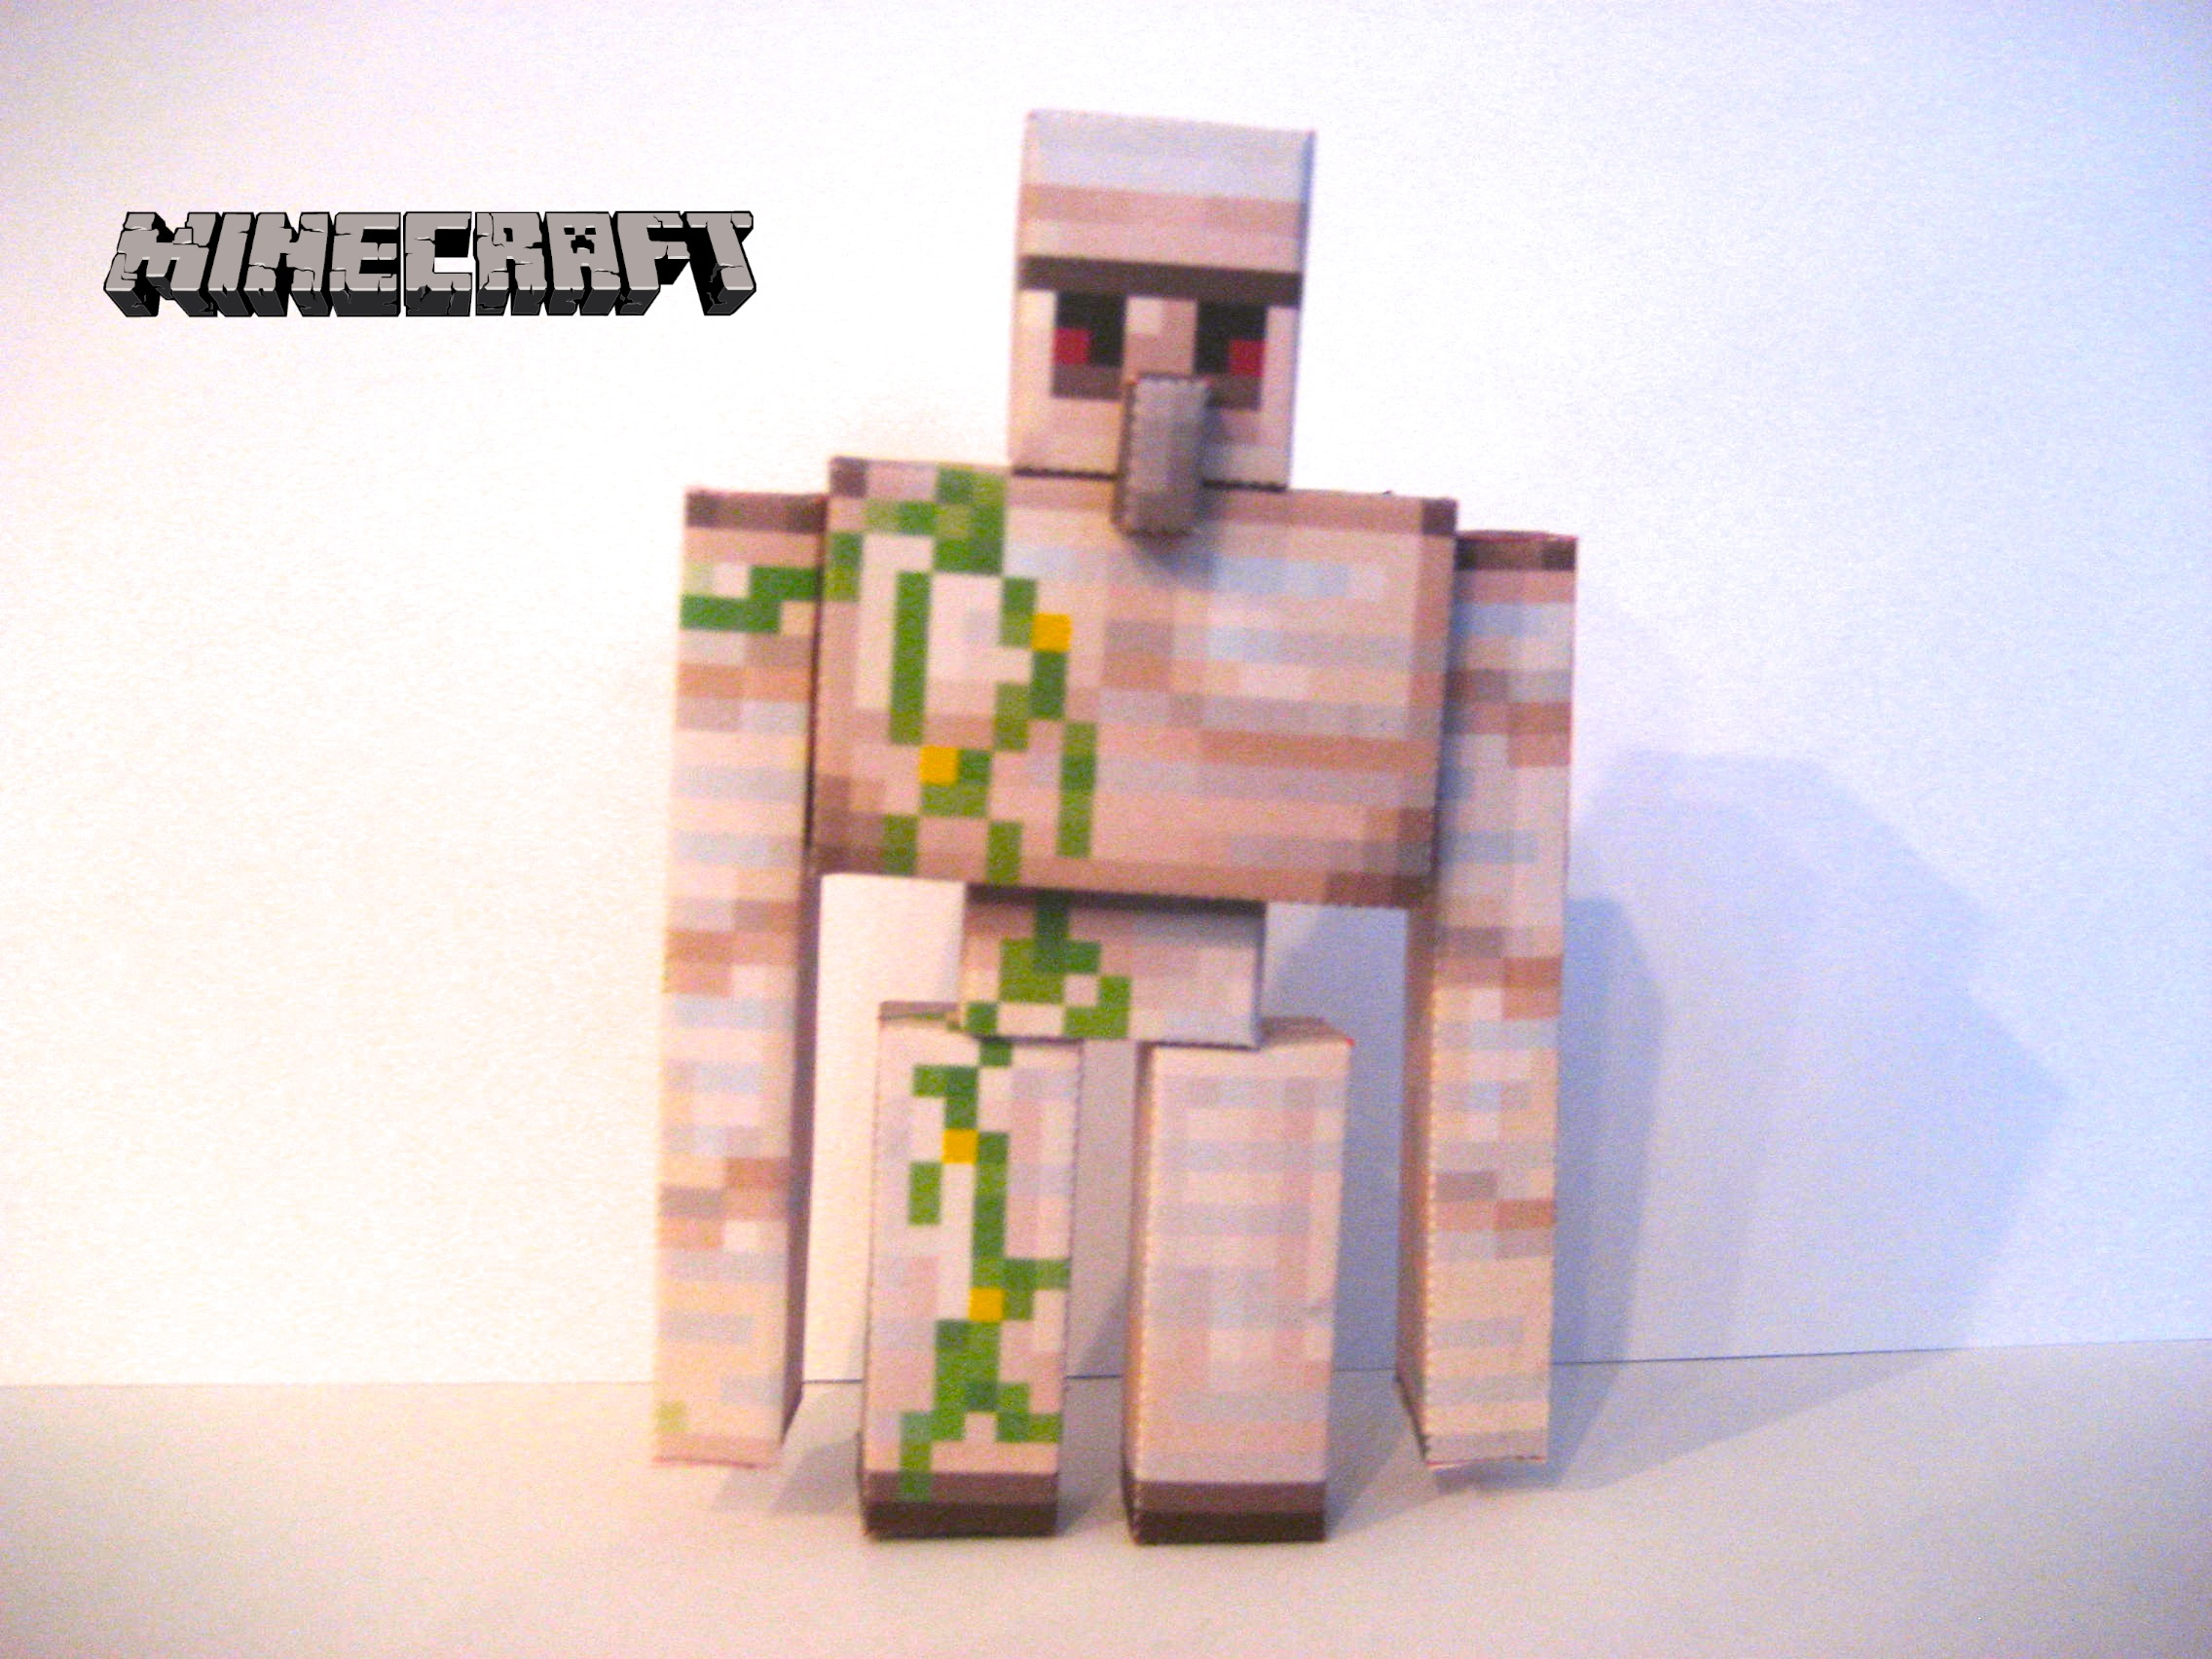 Minecraft Papercraft - Iron Golem by poethetortoise